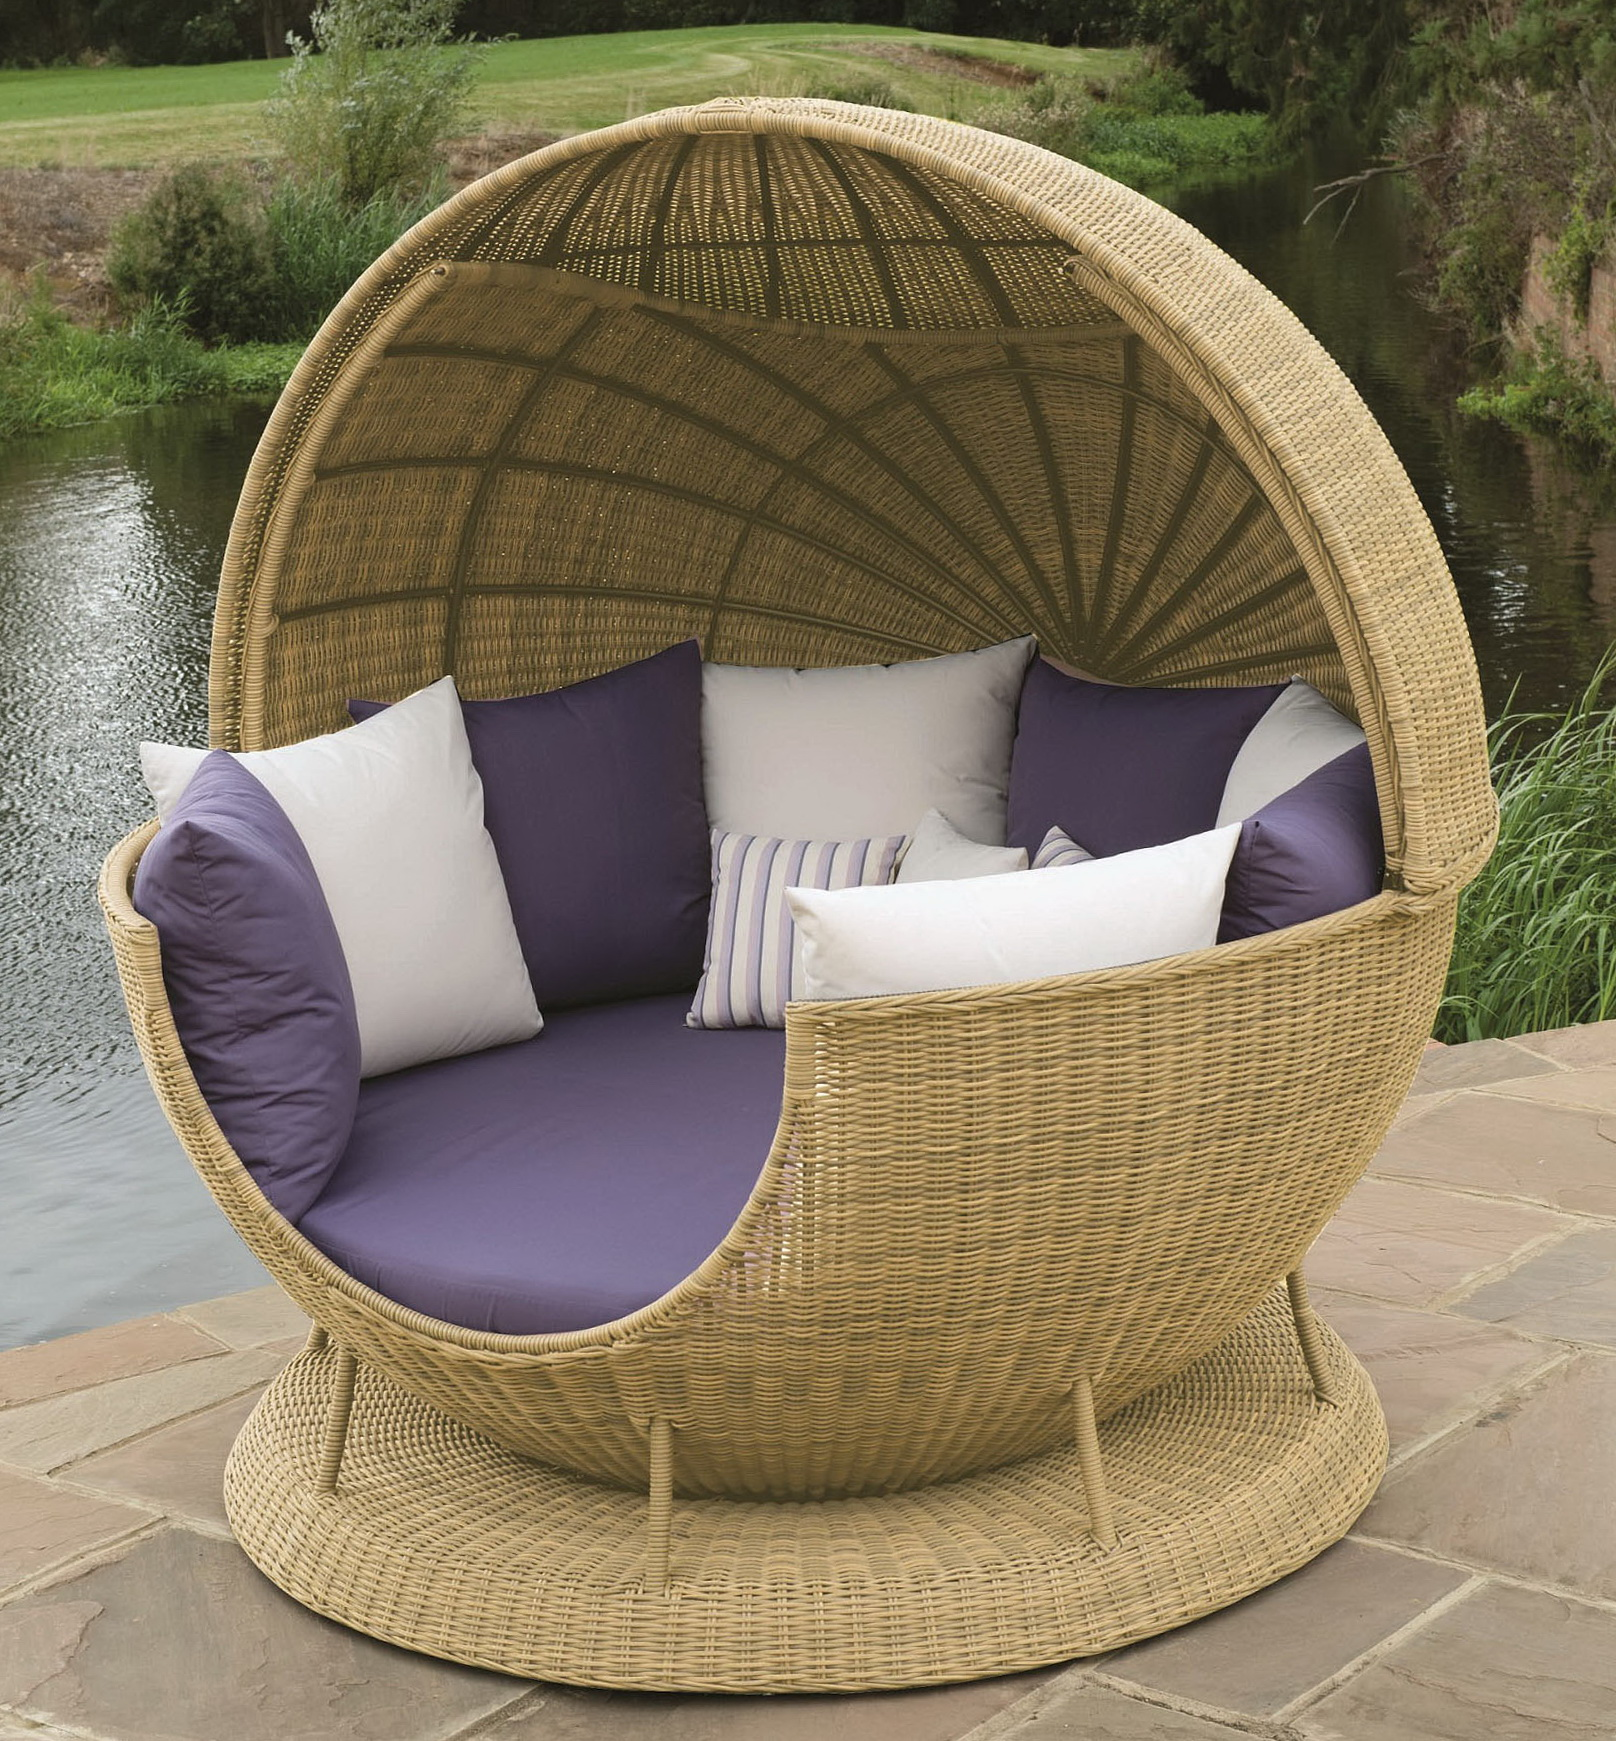 outdoor wicker chairs nz recliner movie theater round cushions home design ideas